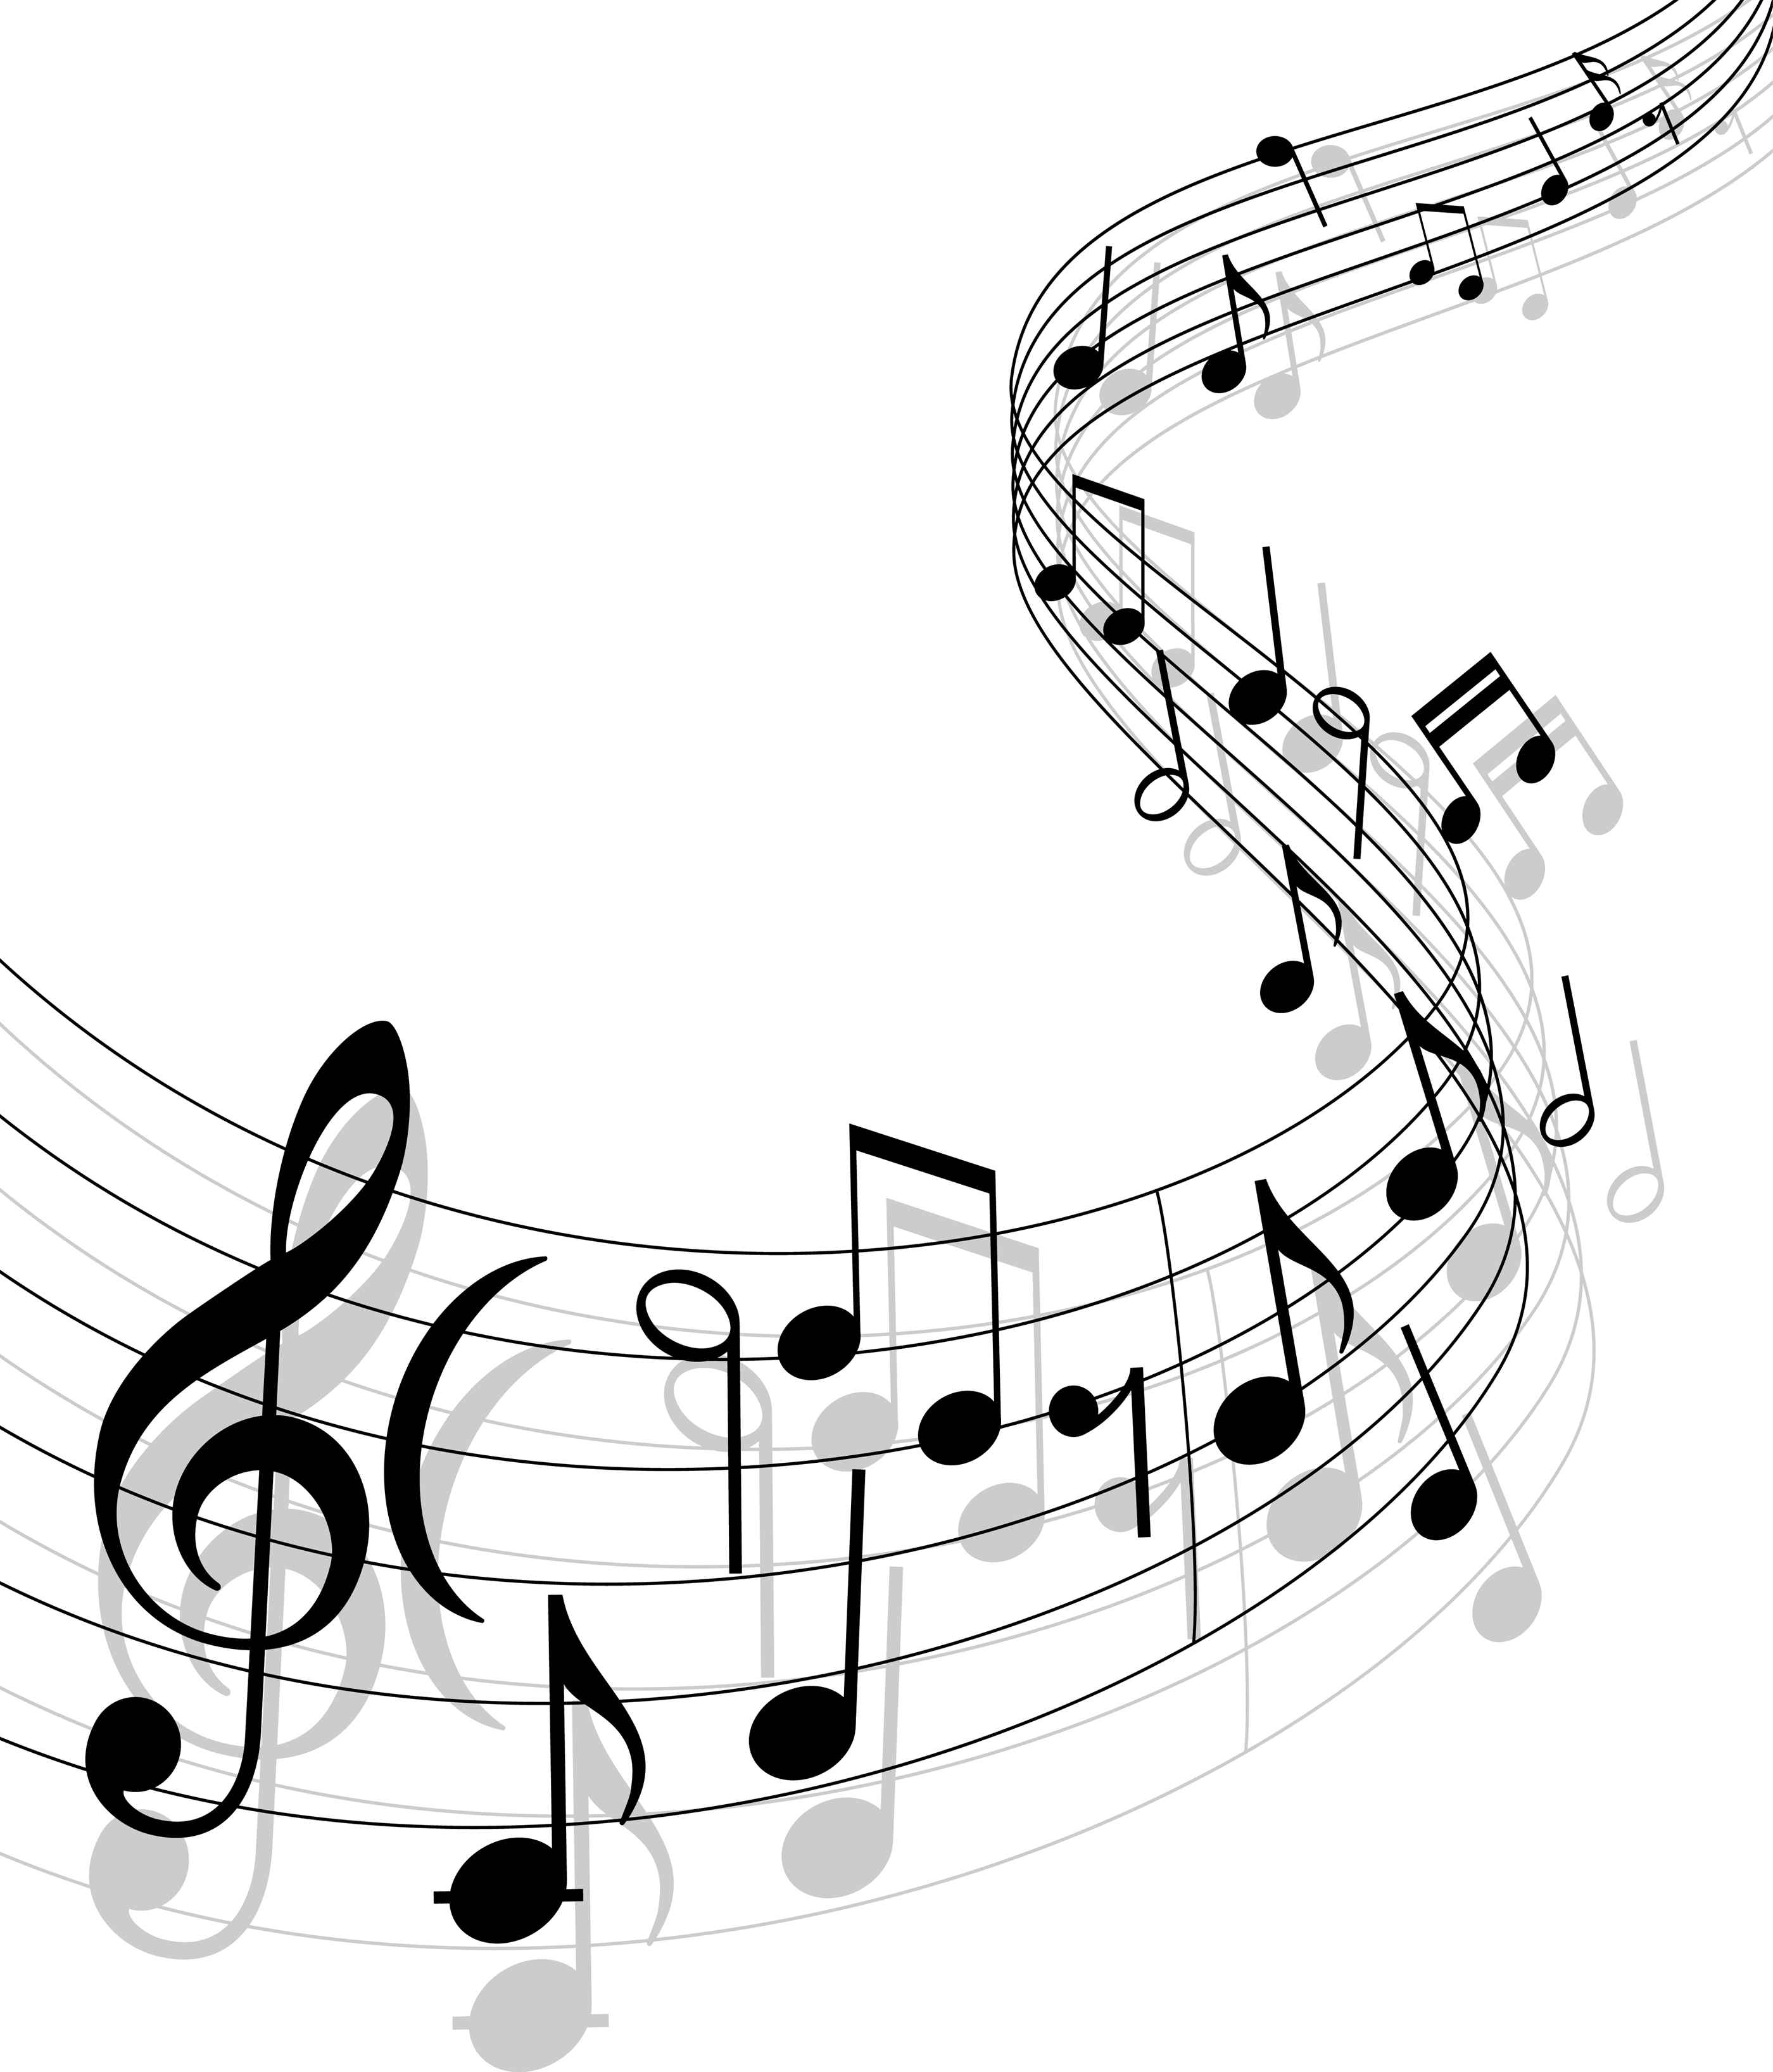 Free simple music black and white clipart picture royalty free library Music note musical notes music musical note clipart free vector for ... picture royalty free library